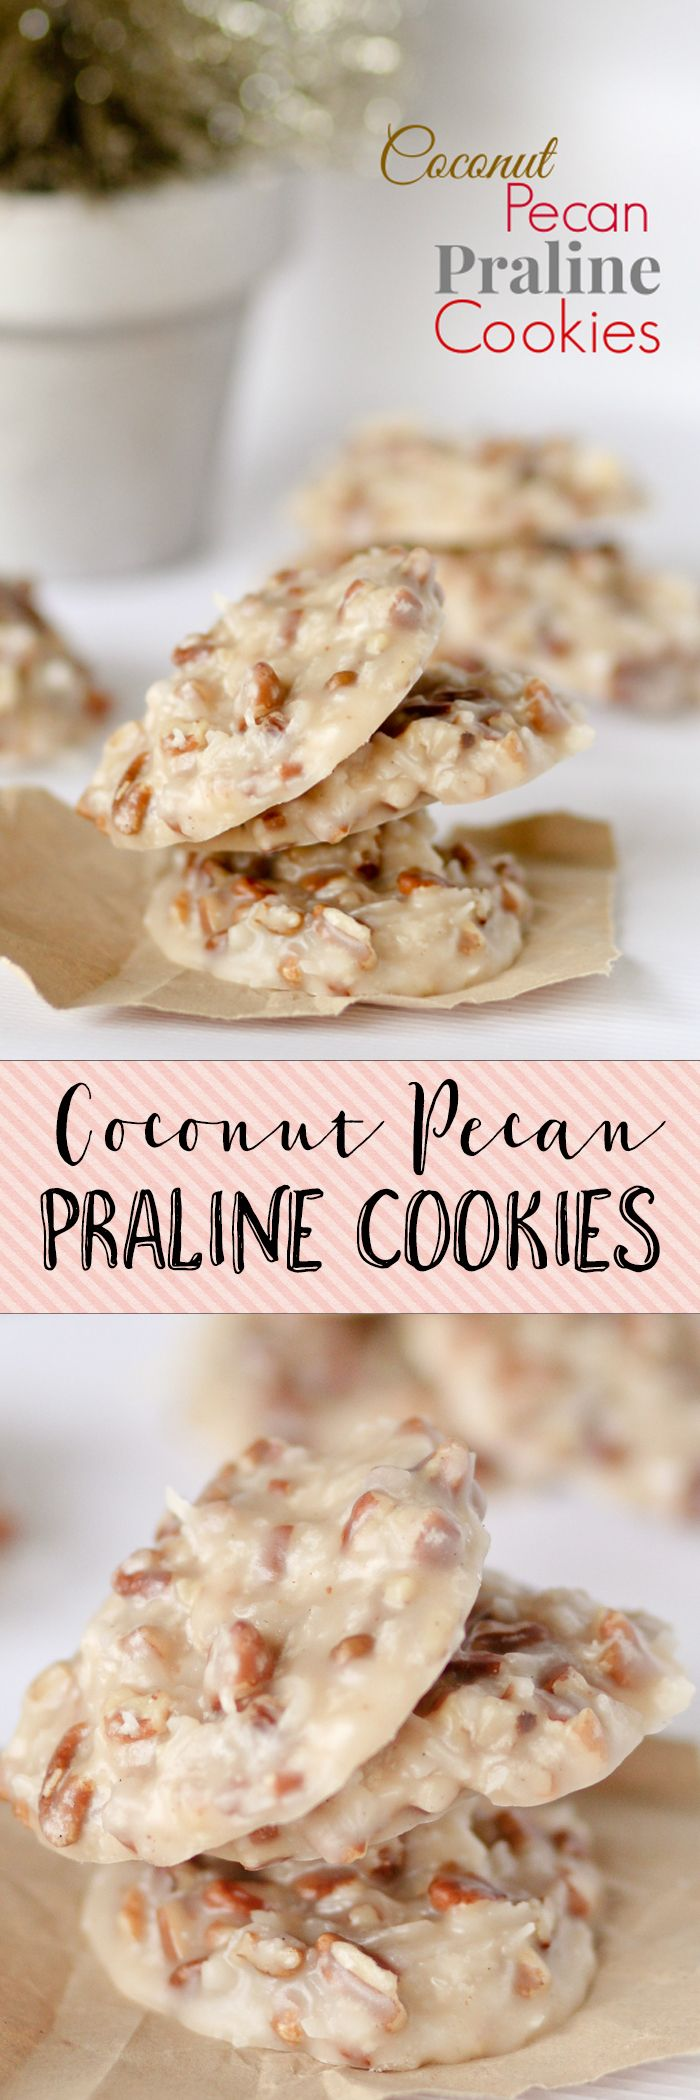 These insanely popular cookies are part cookie/part candy! They taste like a praline with coconut!!